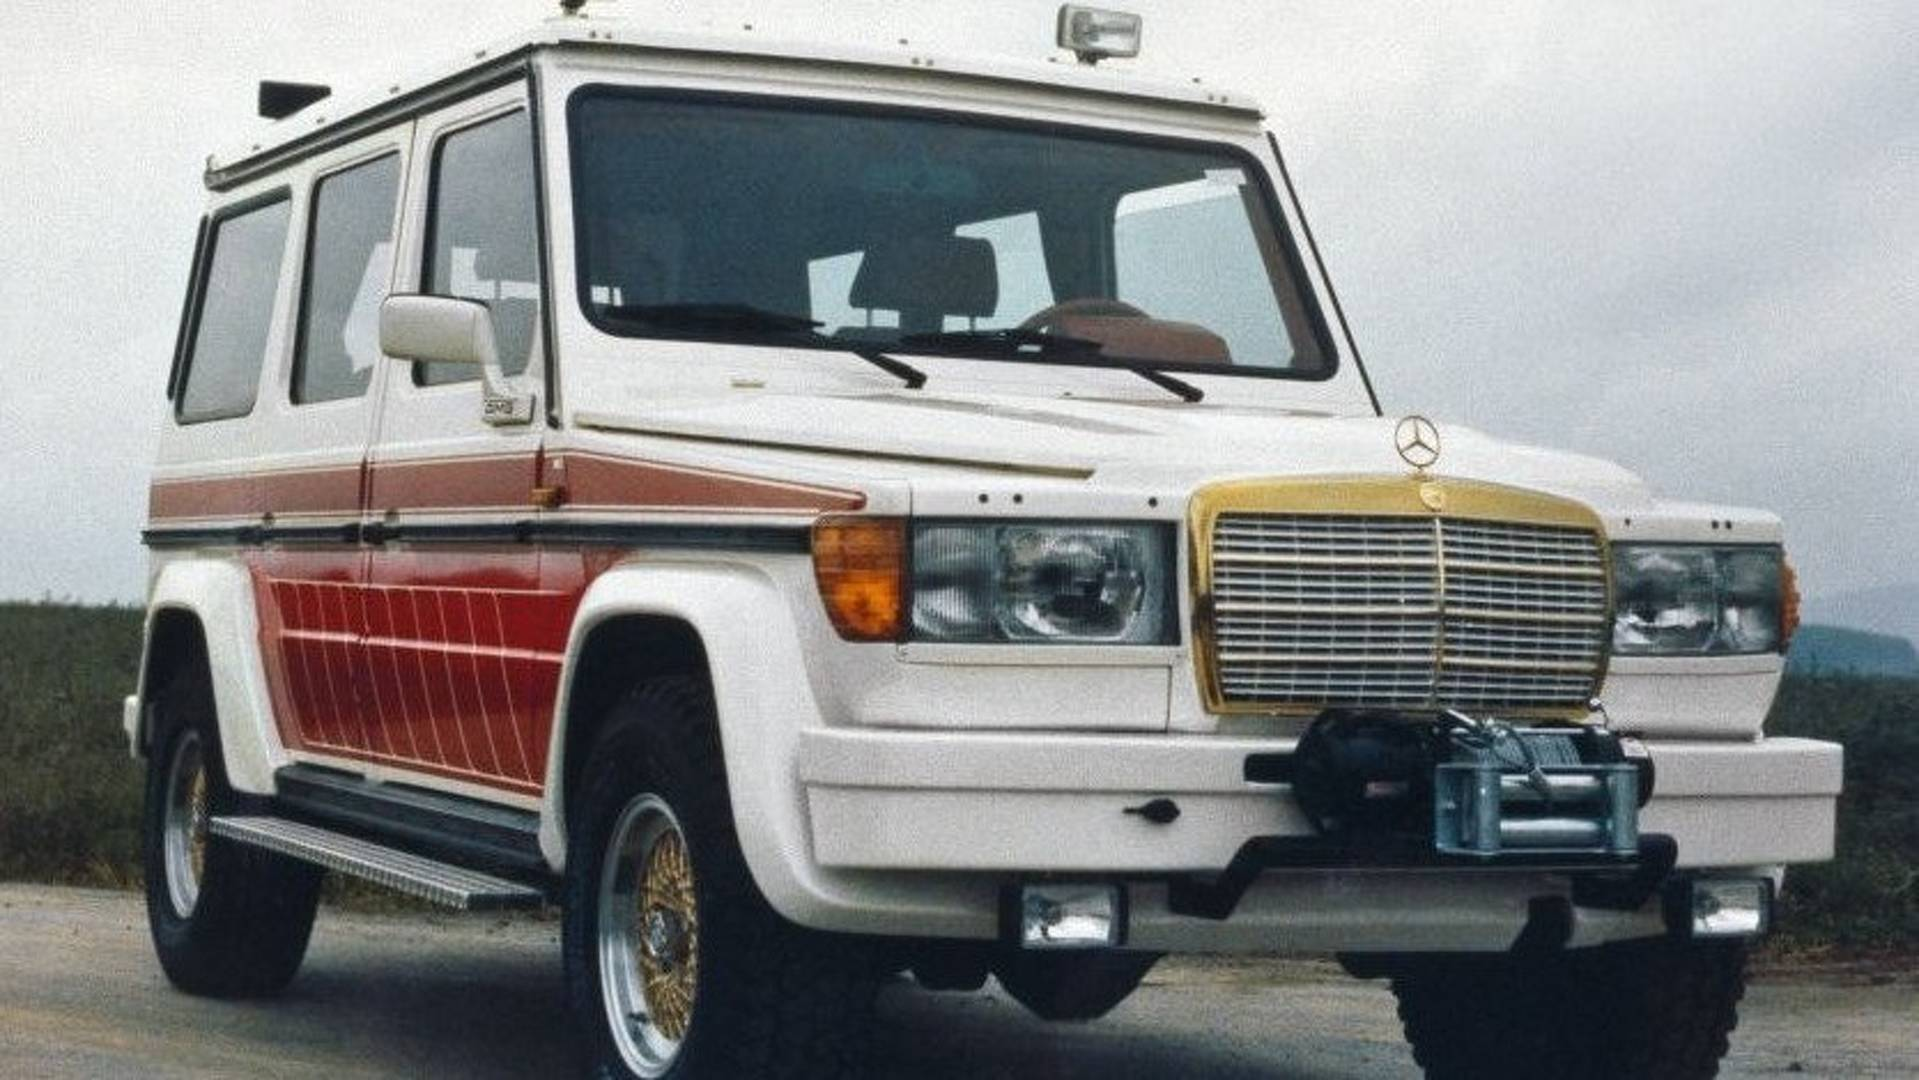 1979 Mercedes AMG G Wagen Proves The 70s Were Weird And Awesome